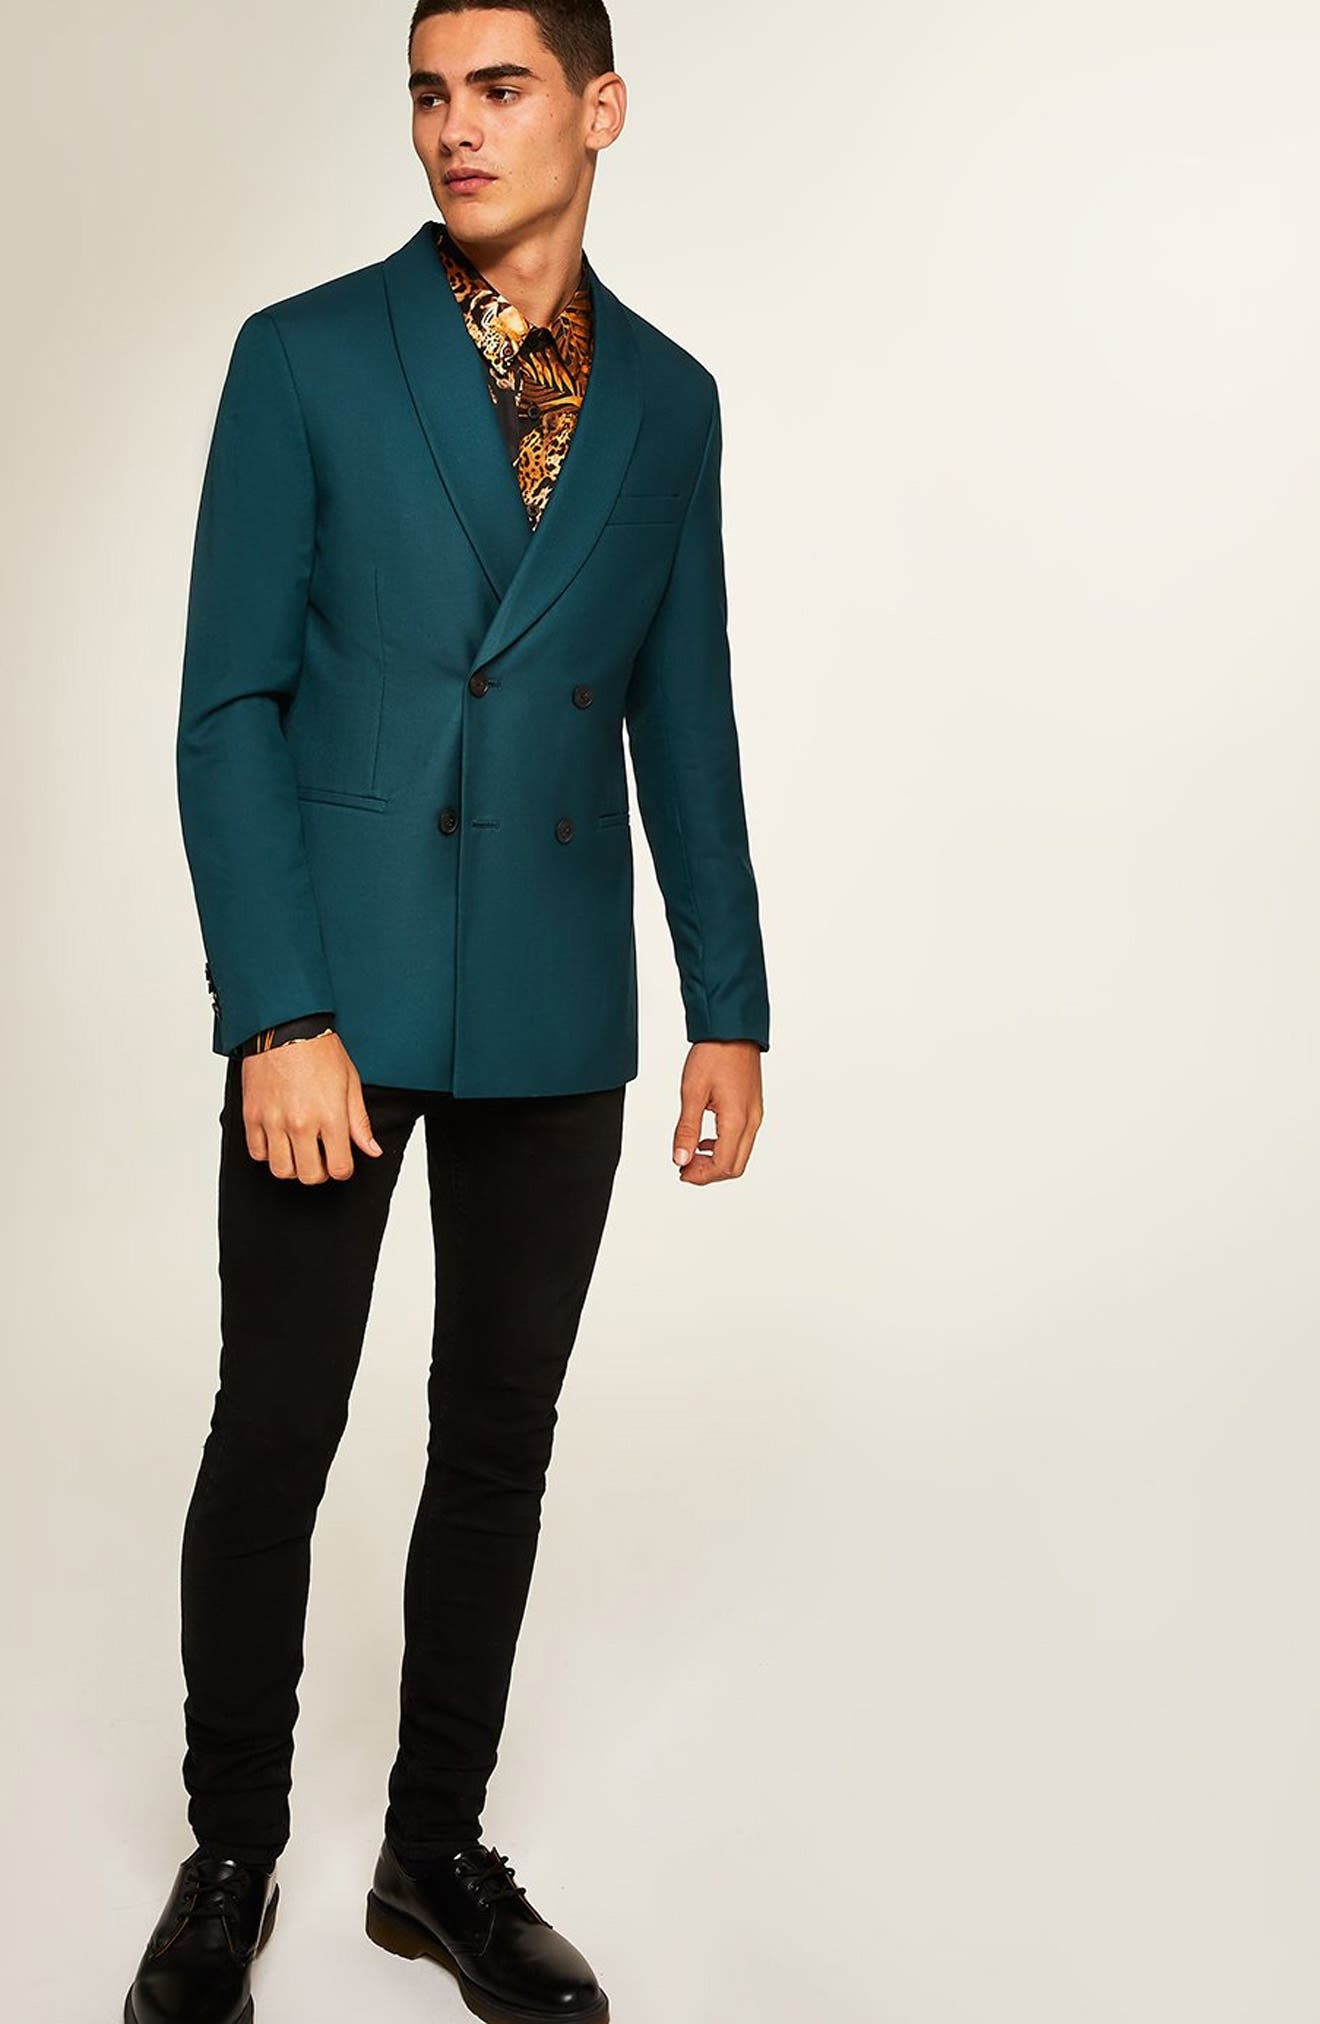 Skinny Fit Double Breasted Blazer,                             Alternate thumbnail 5, color,                             300